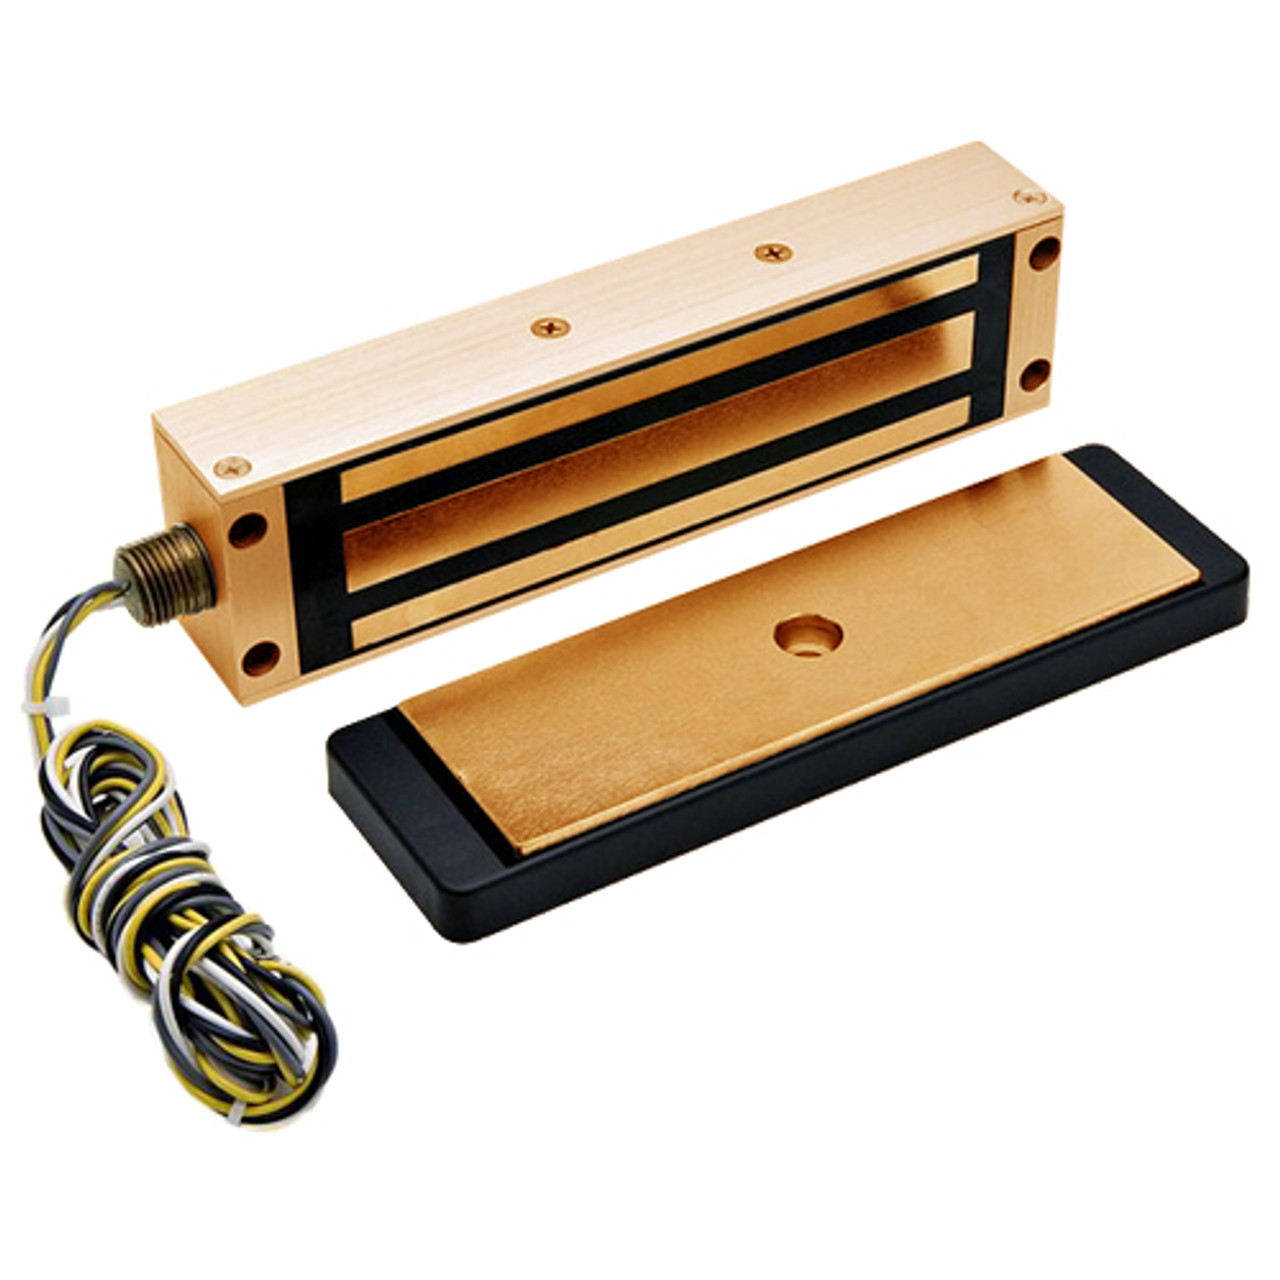 2013-US10-RWE DynaLock 2013 Series 1200 LB Holding Force Single Electromagnetic Gate Lock with Rear Wire Exit in Satin Bronze